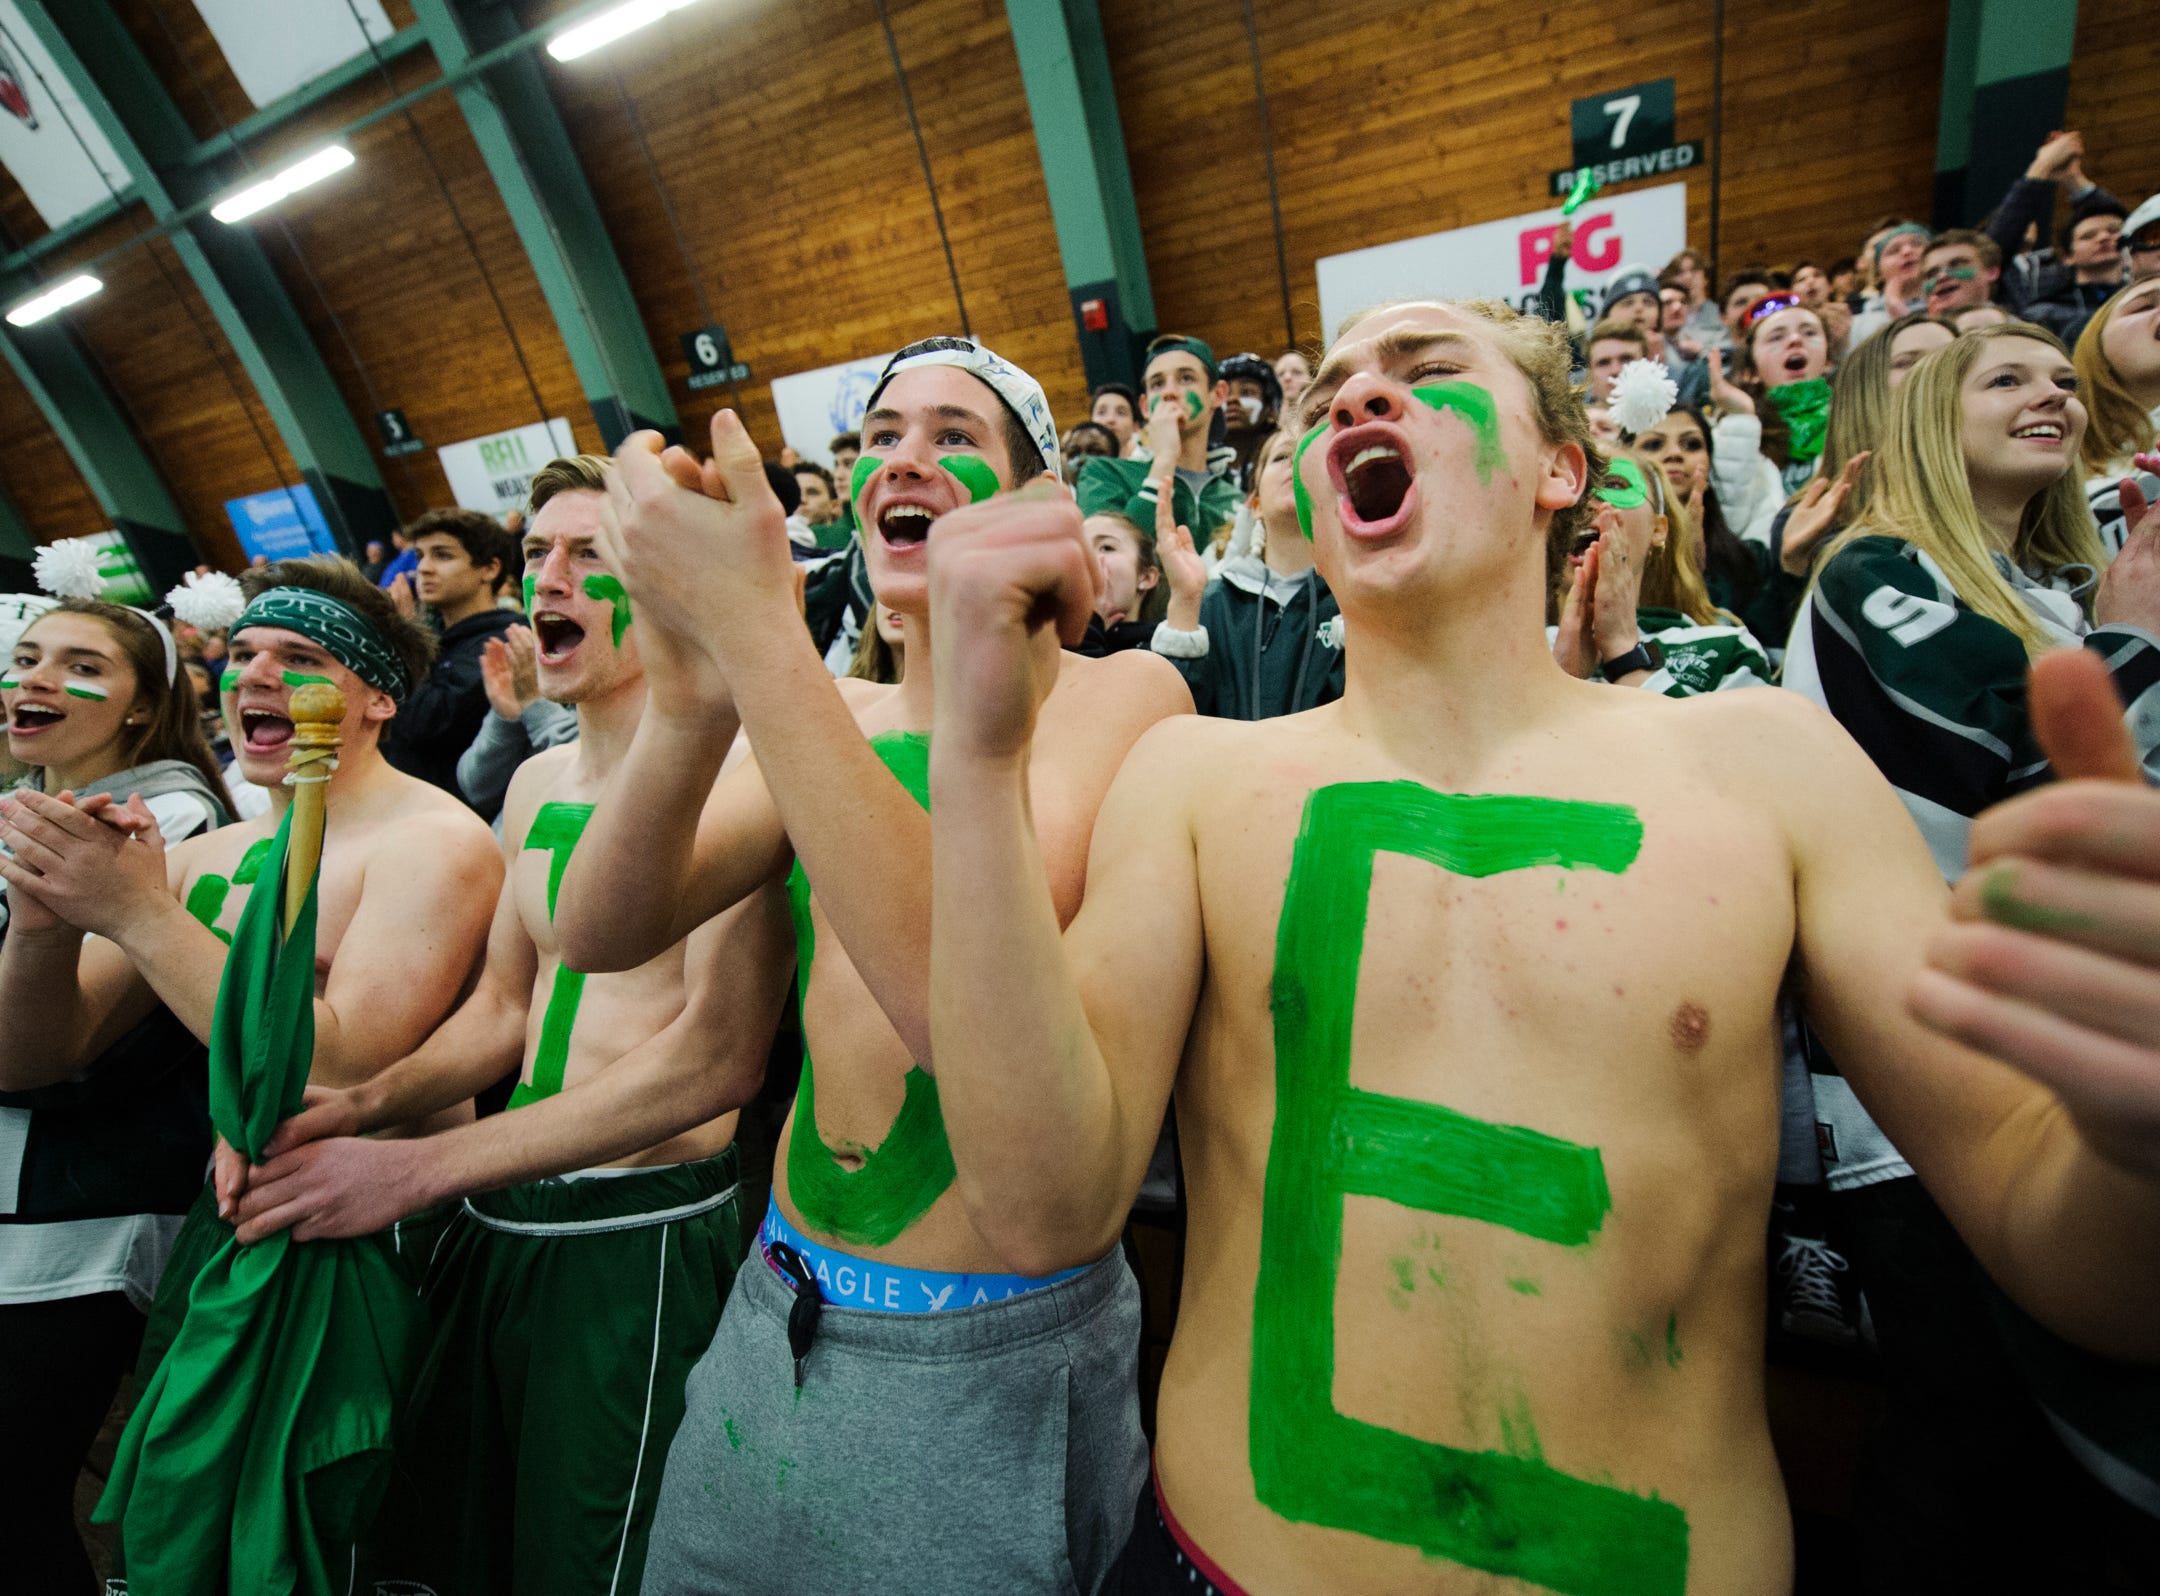 Rice fans cheer for the team during the DI boys hockey championship game between the Rice Green Knights and the Essex Hornets at Gutterson Field House on Wednesday night March 13, 2019 in Burlington, Vermont.